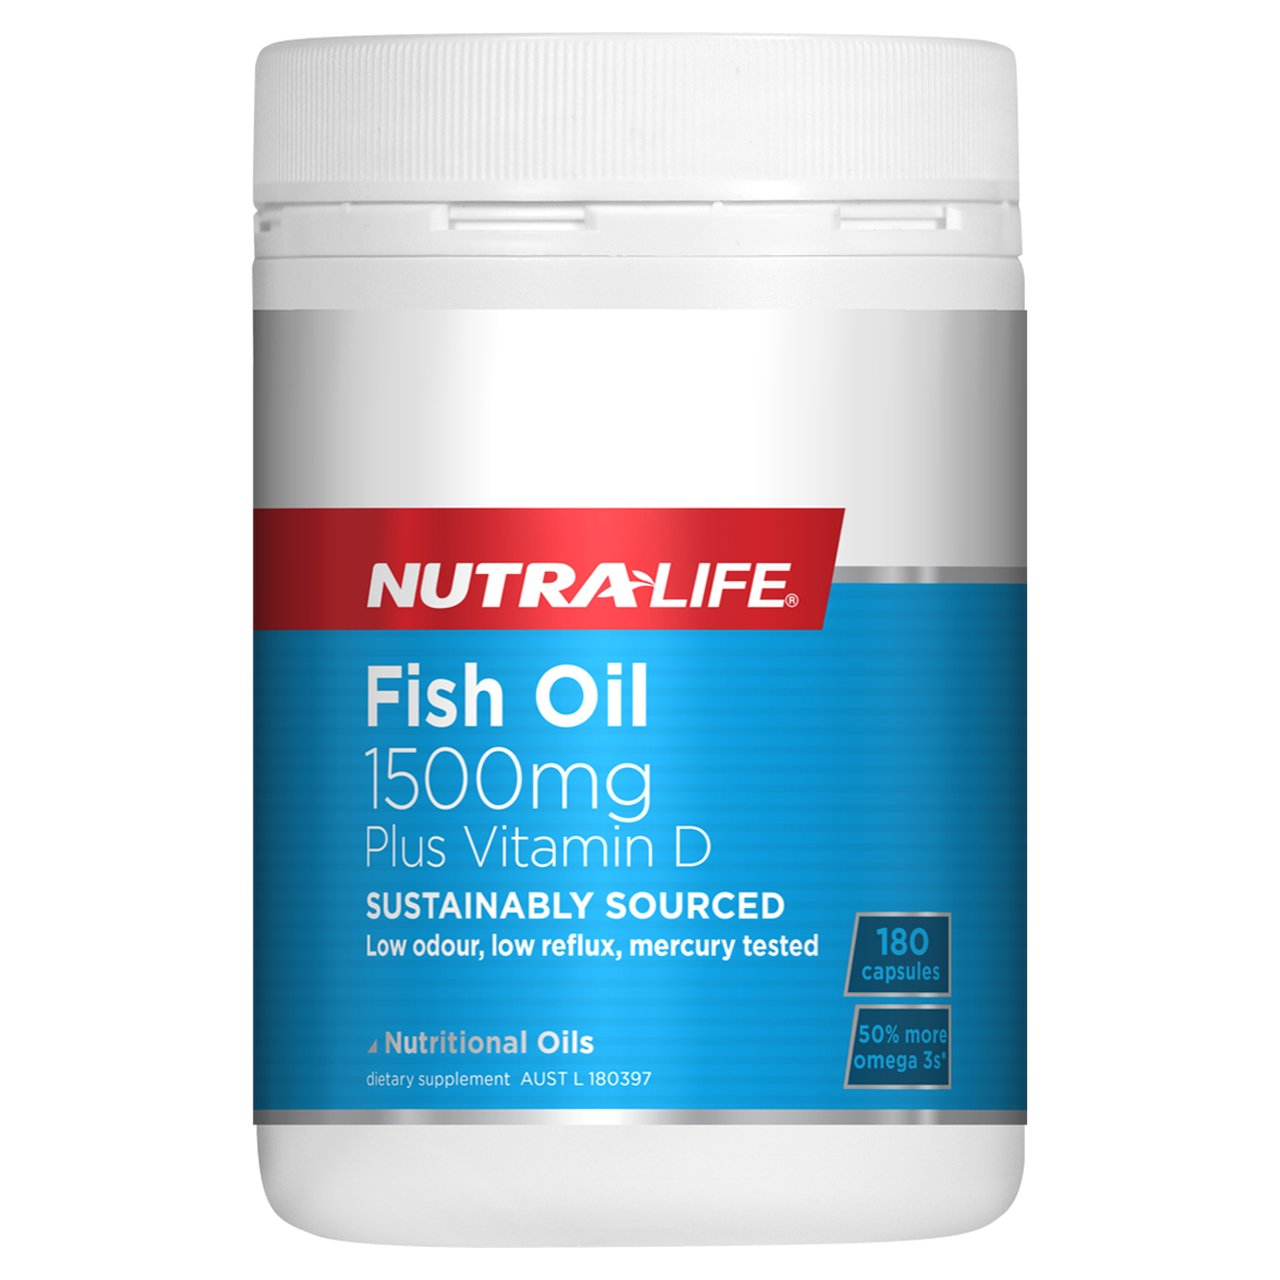 Nutra-Life Fish Oil 1500mg Plus Vitamin D 180 Caps